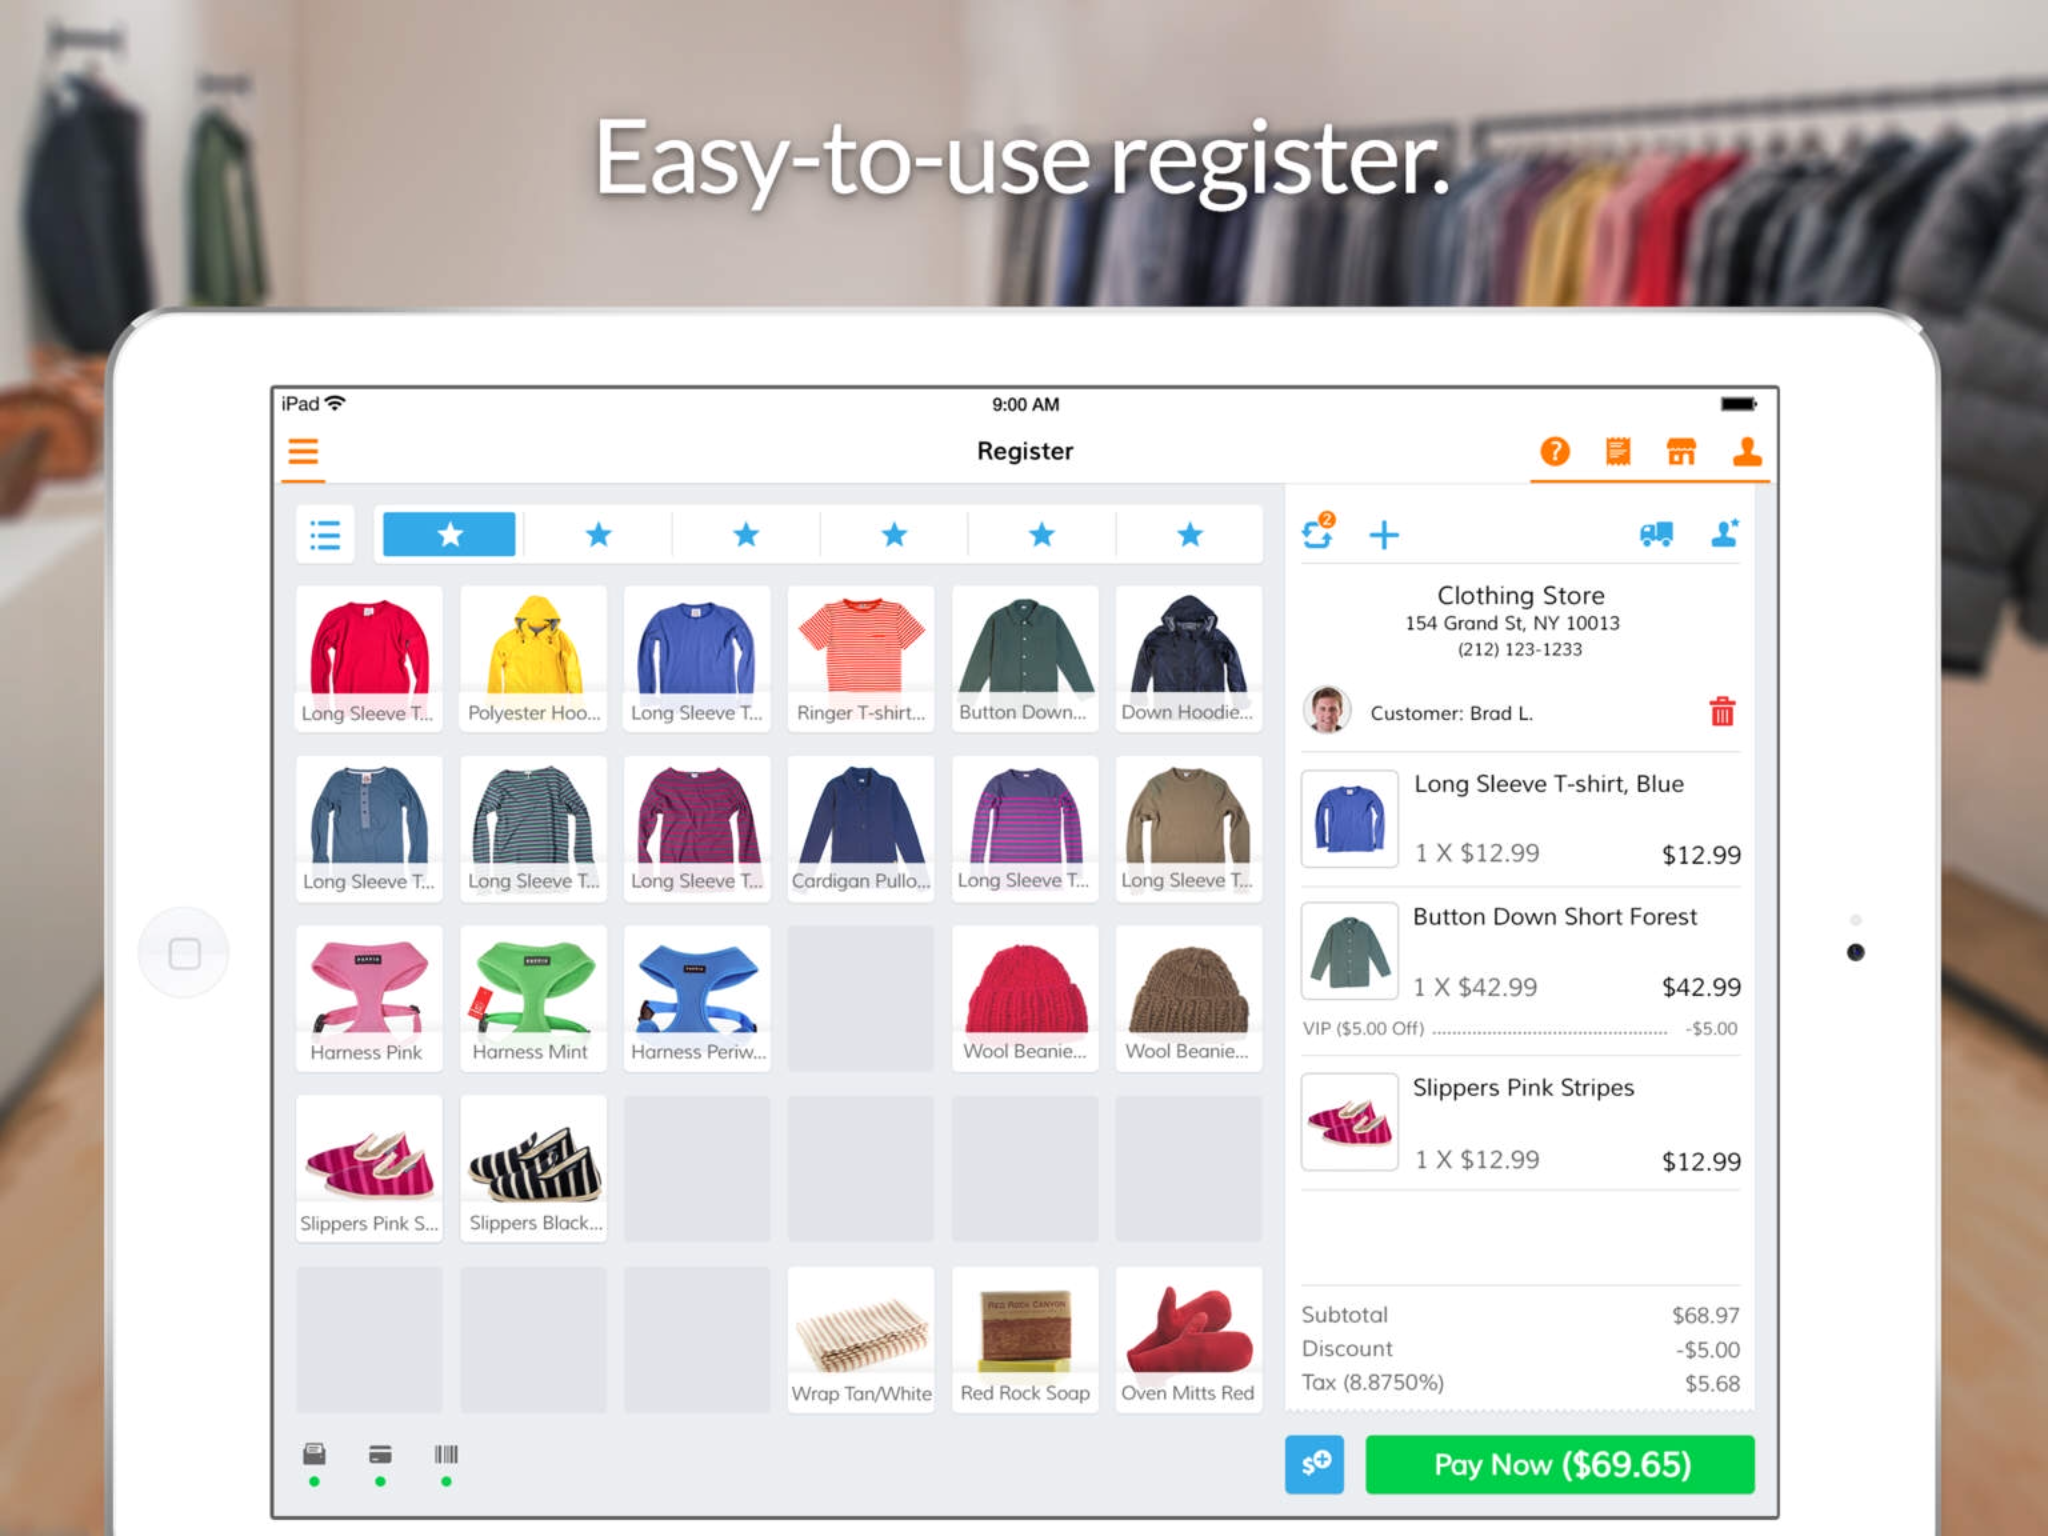 Manage online sales from the easy-to-use register